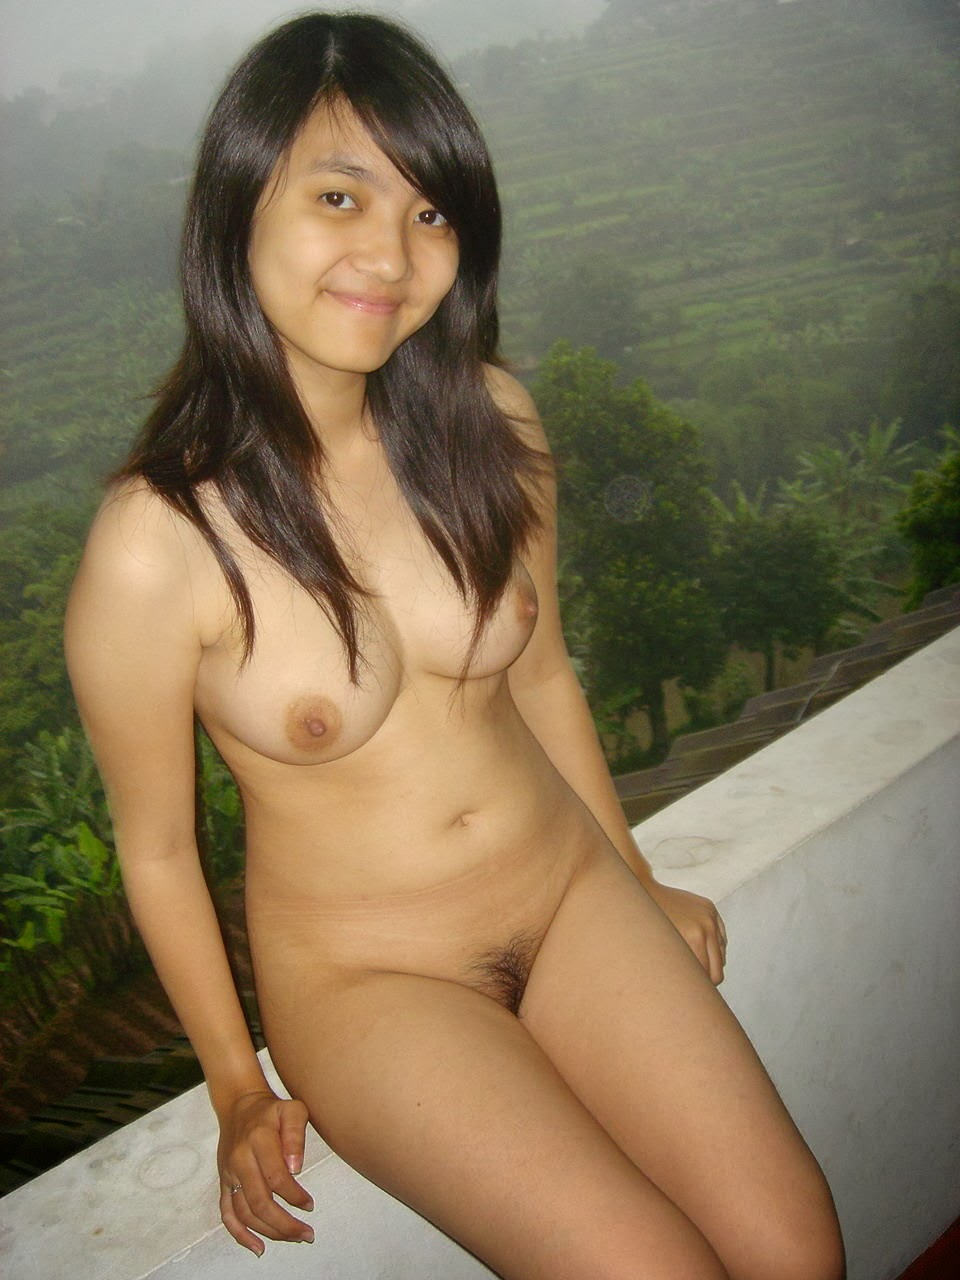 pics of indian naked boys and girls flirting